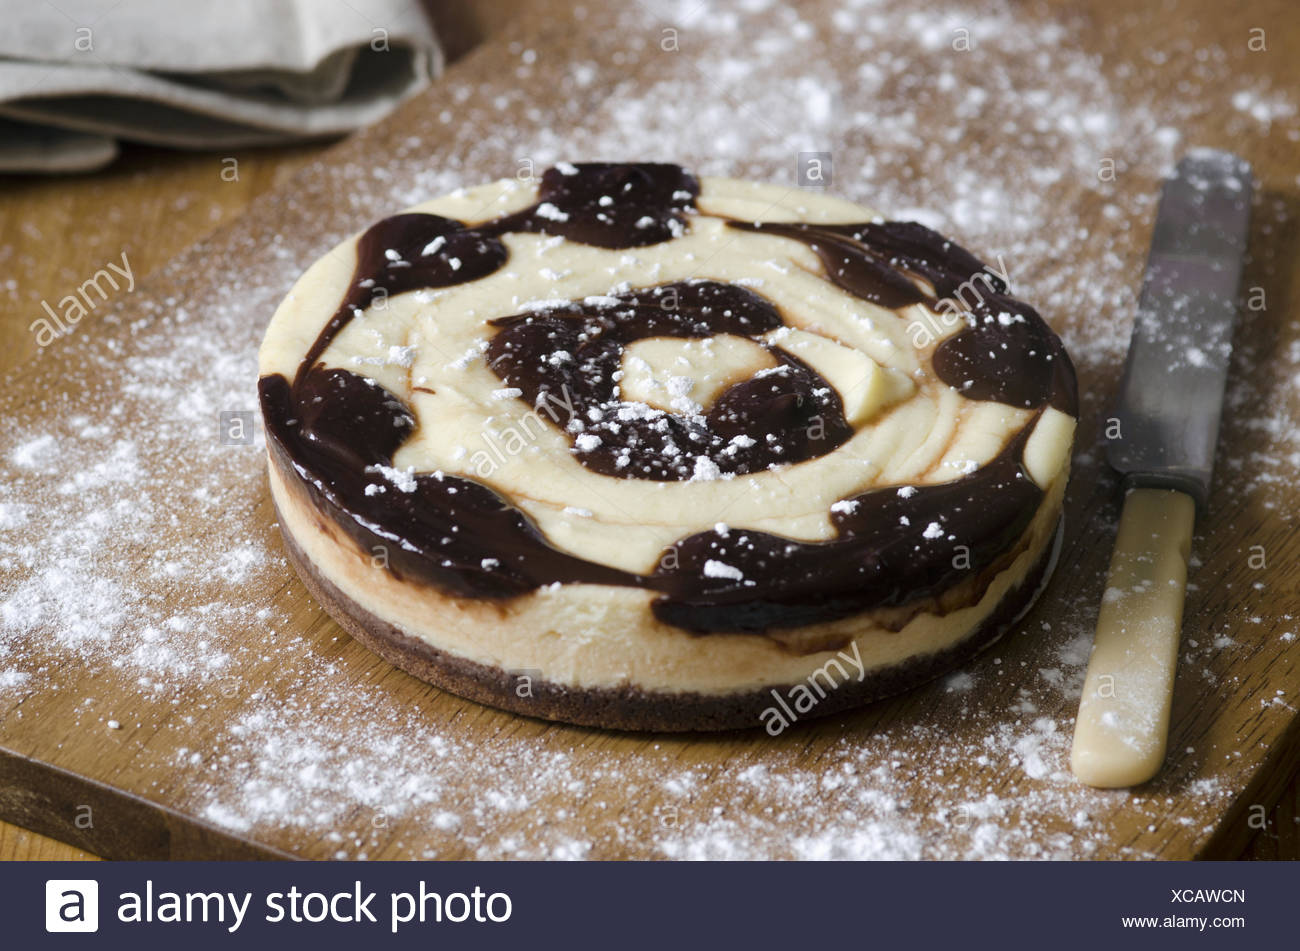 Delicious chocolate swirl cheesecake on a wooden board. - Stock Image